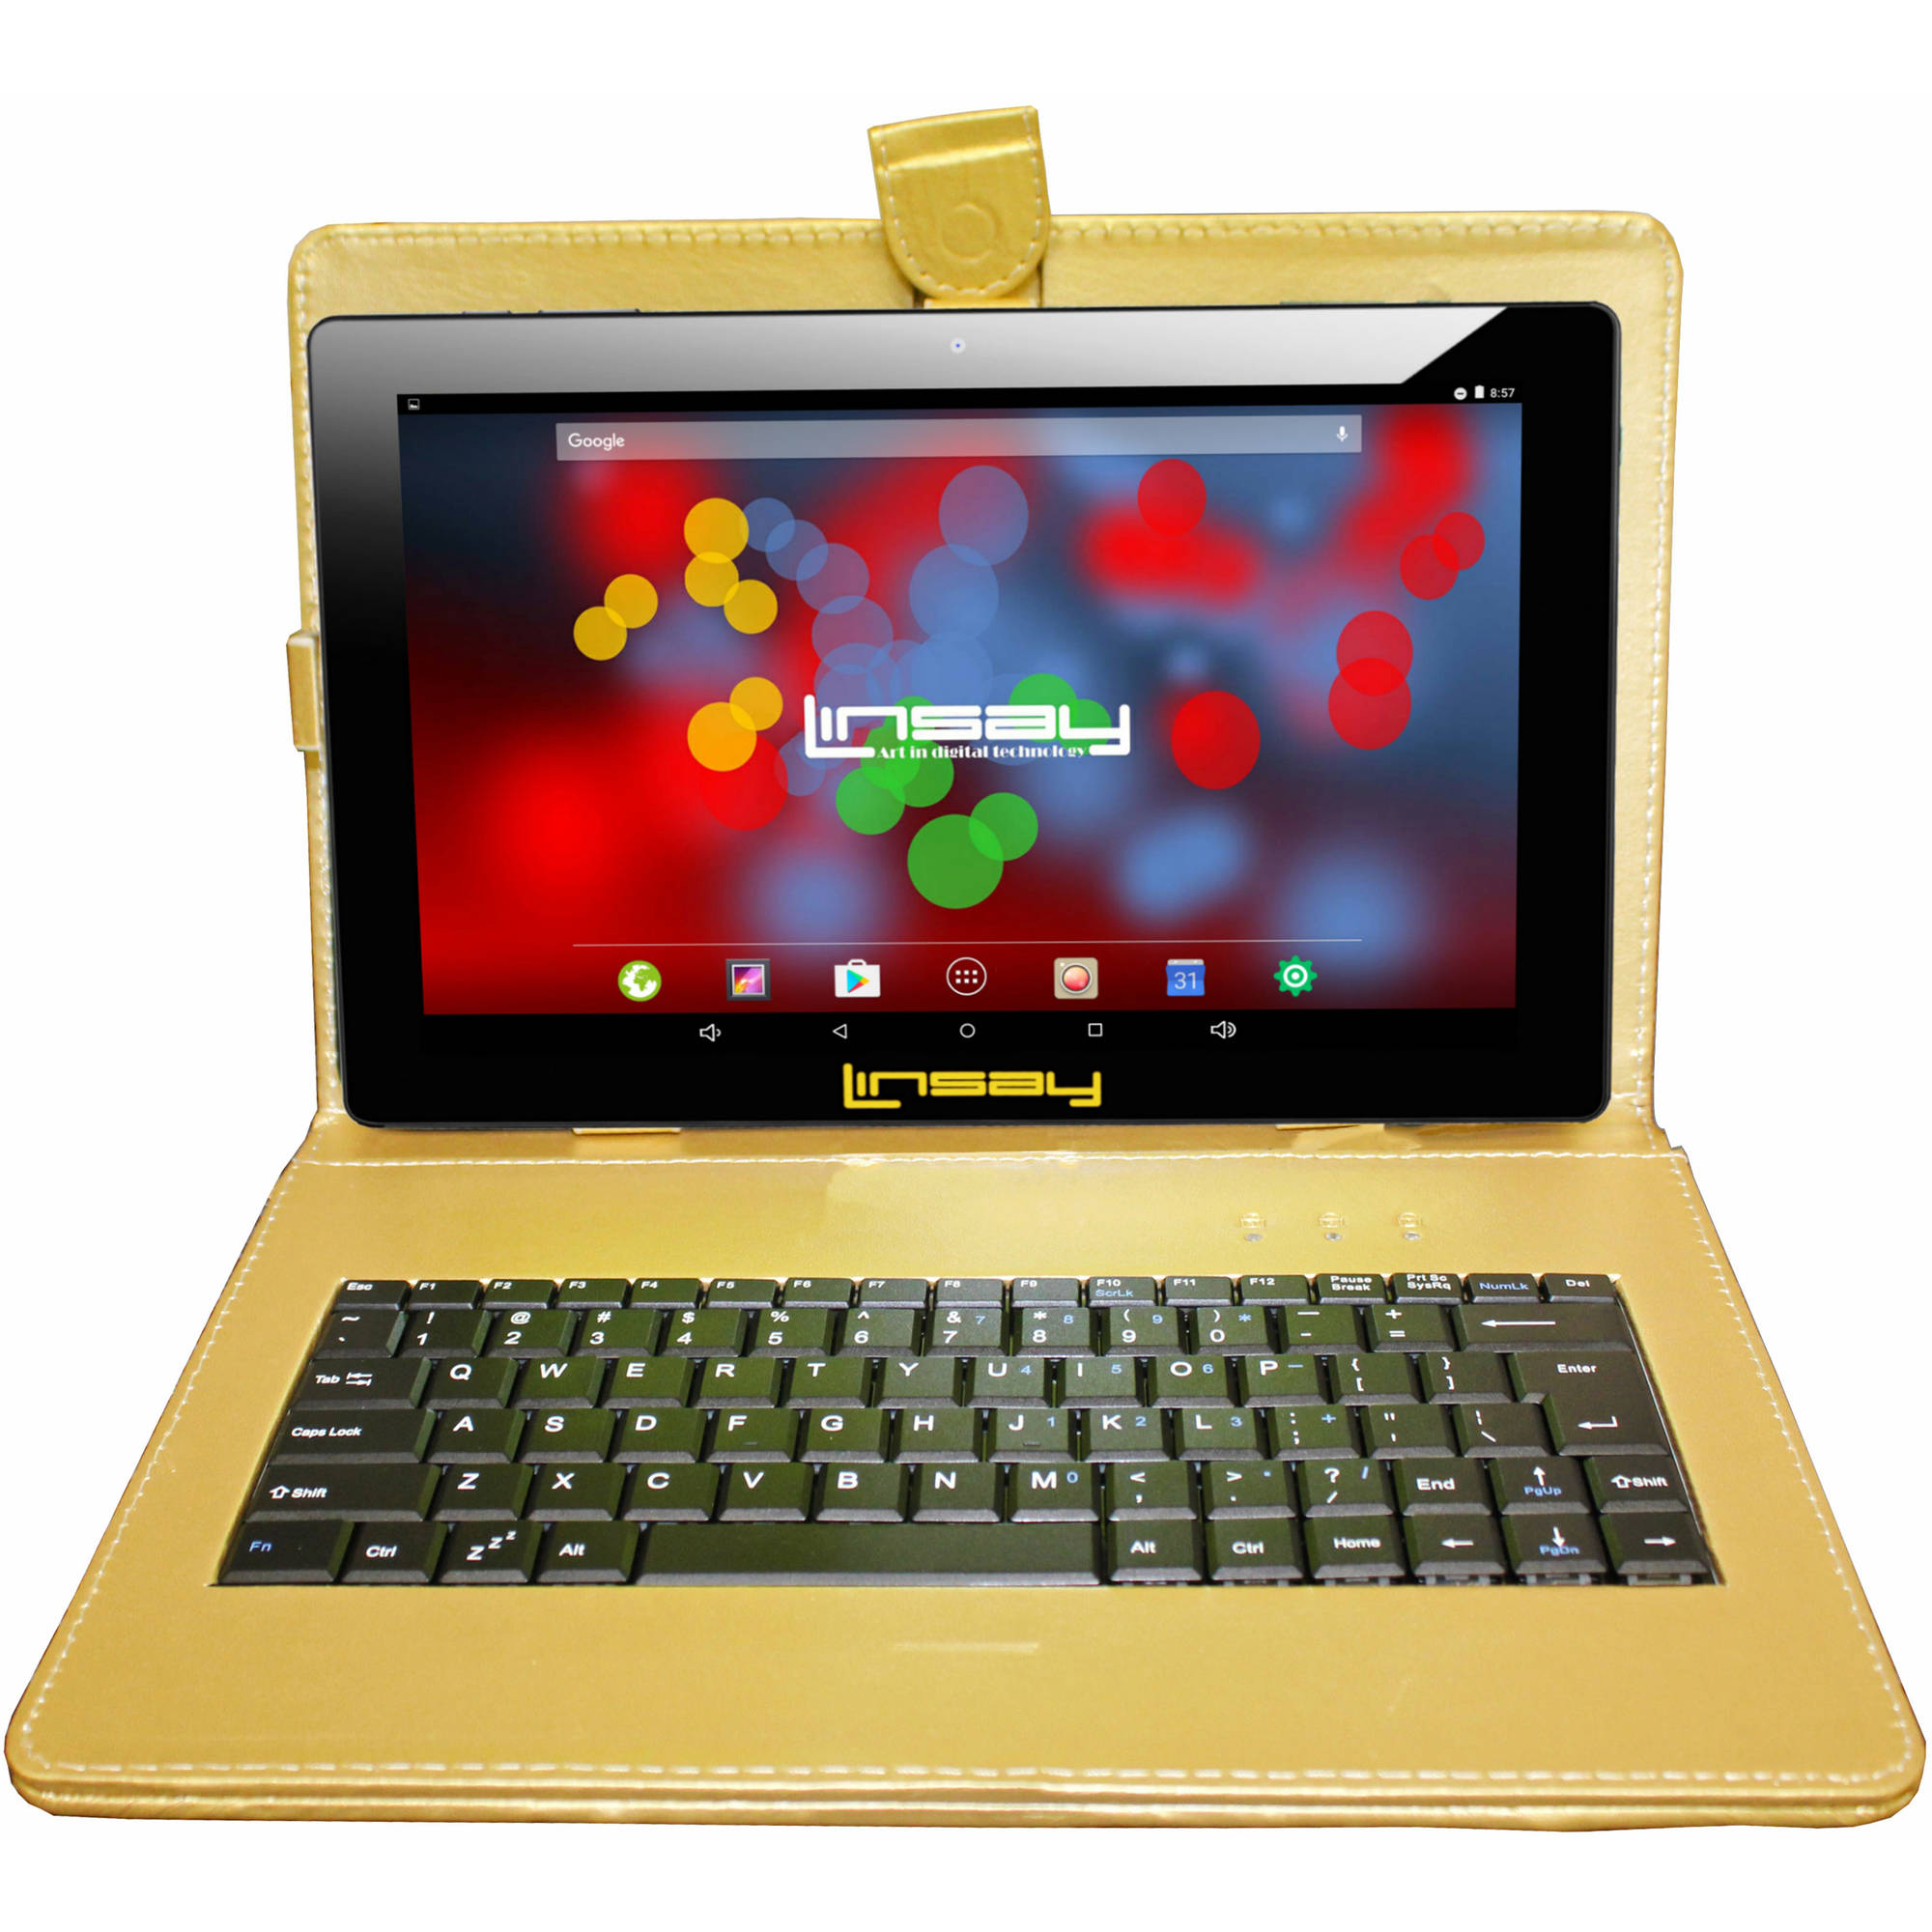 "LINSAY 10.1"" 1280x800 IPS Touchscreen 16GB Tablet PC Featuring Android 6.1 (Marshmallow) Operating System Bundle with Golden Keyboard"